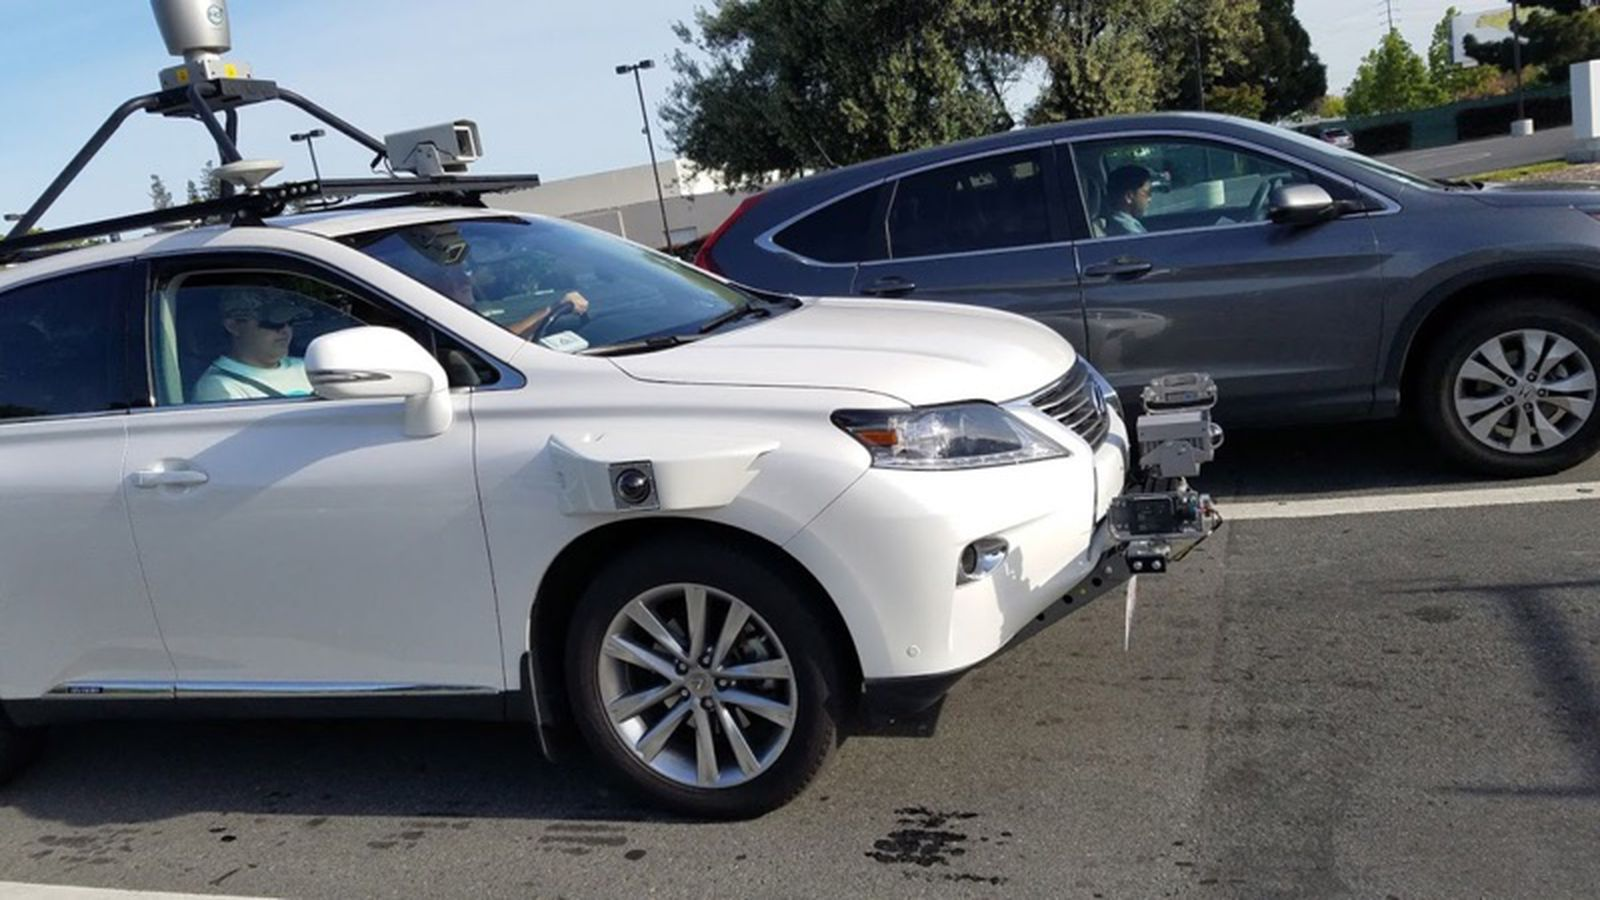 Lexus Suv Being Used For Apple S Self Driving Software Test Spotted On The Road Macrumors